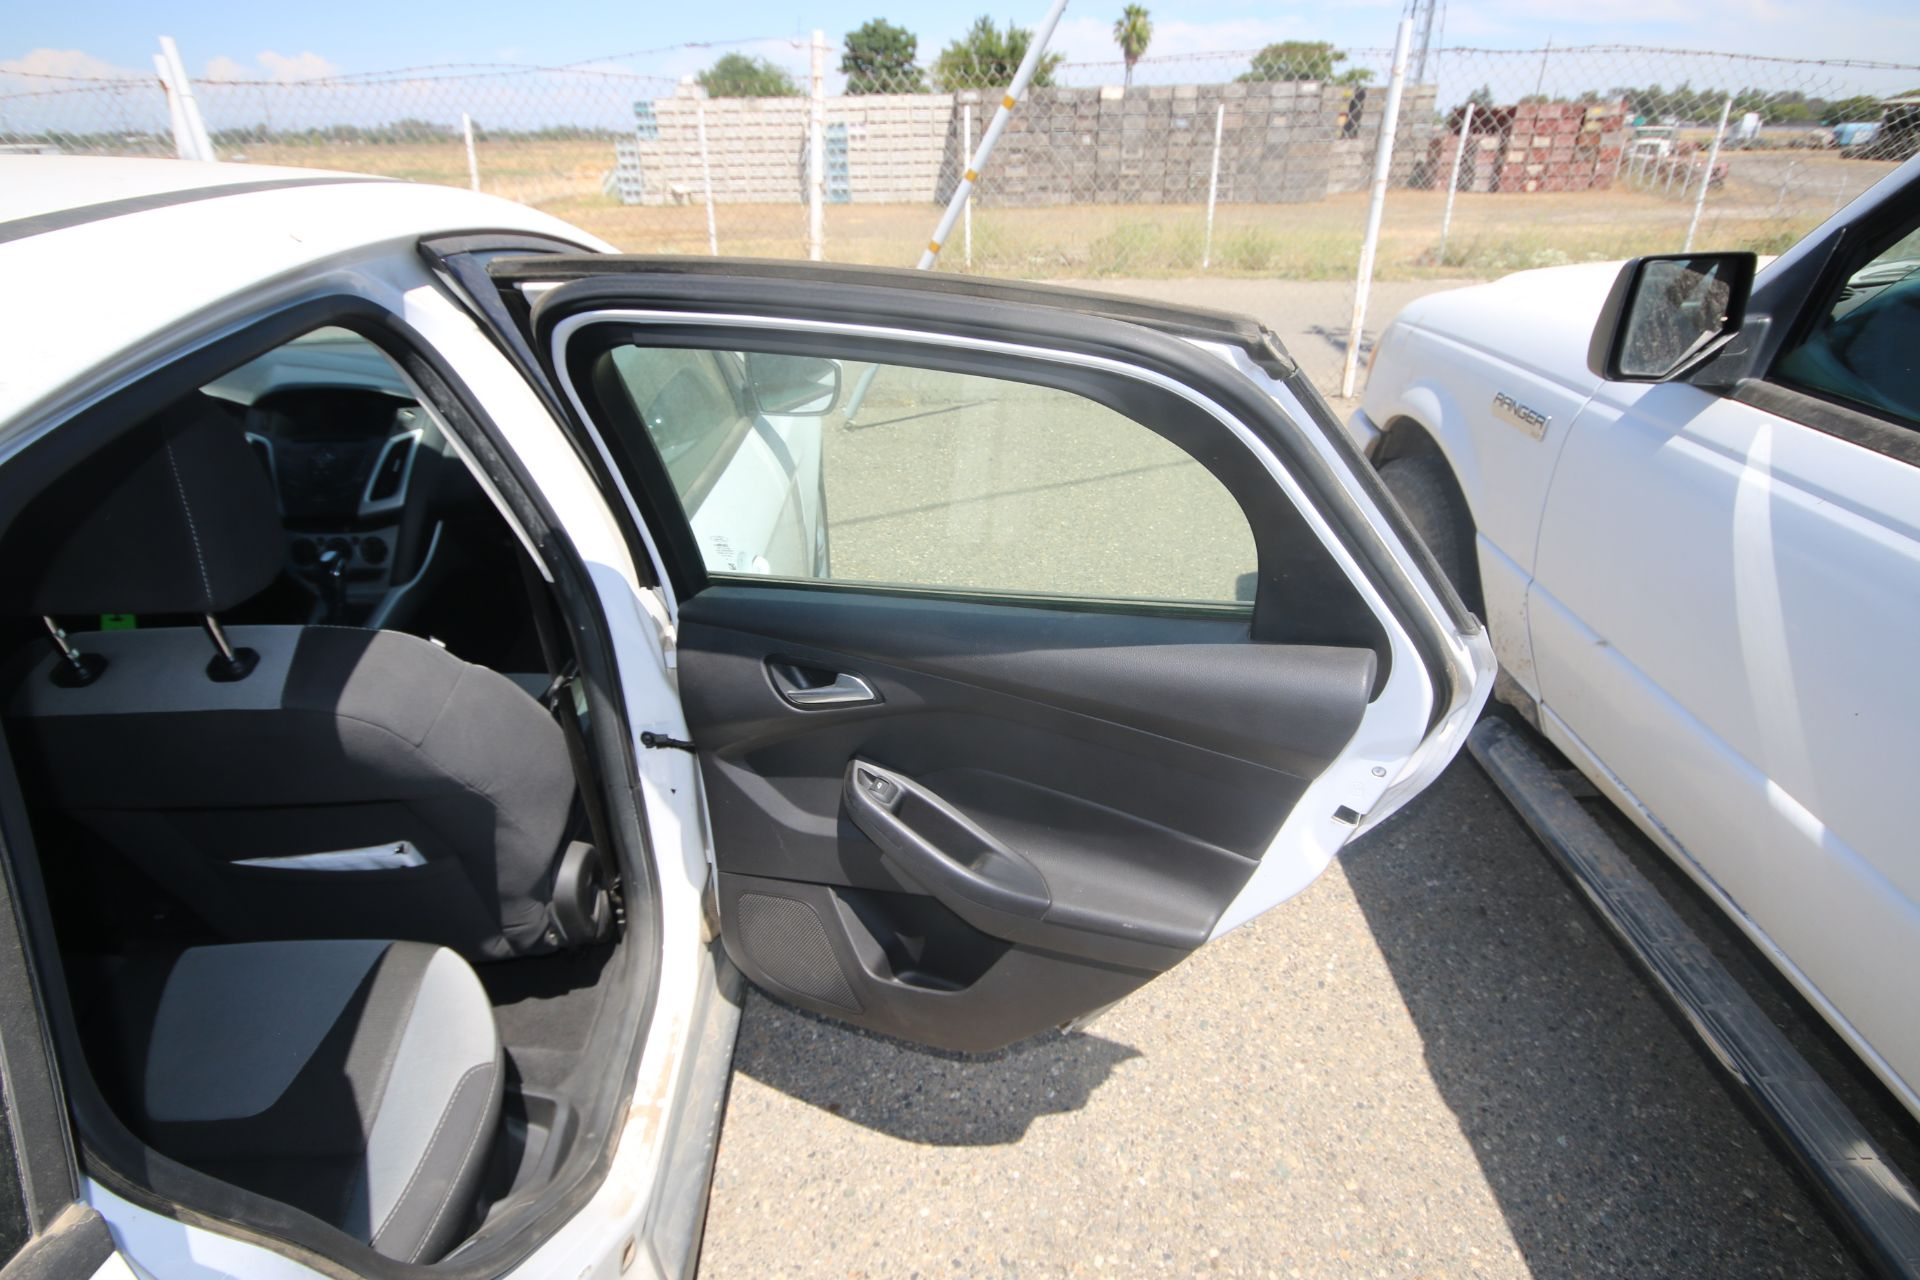 2012 White Ford Focus SE Hatchback 4D, VIN #: 1FAHP3K27CL423326, with 116,017 Miles, with 4-Doors, - Image 13 of 26